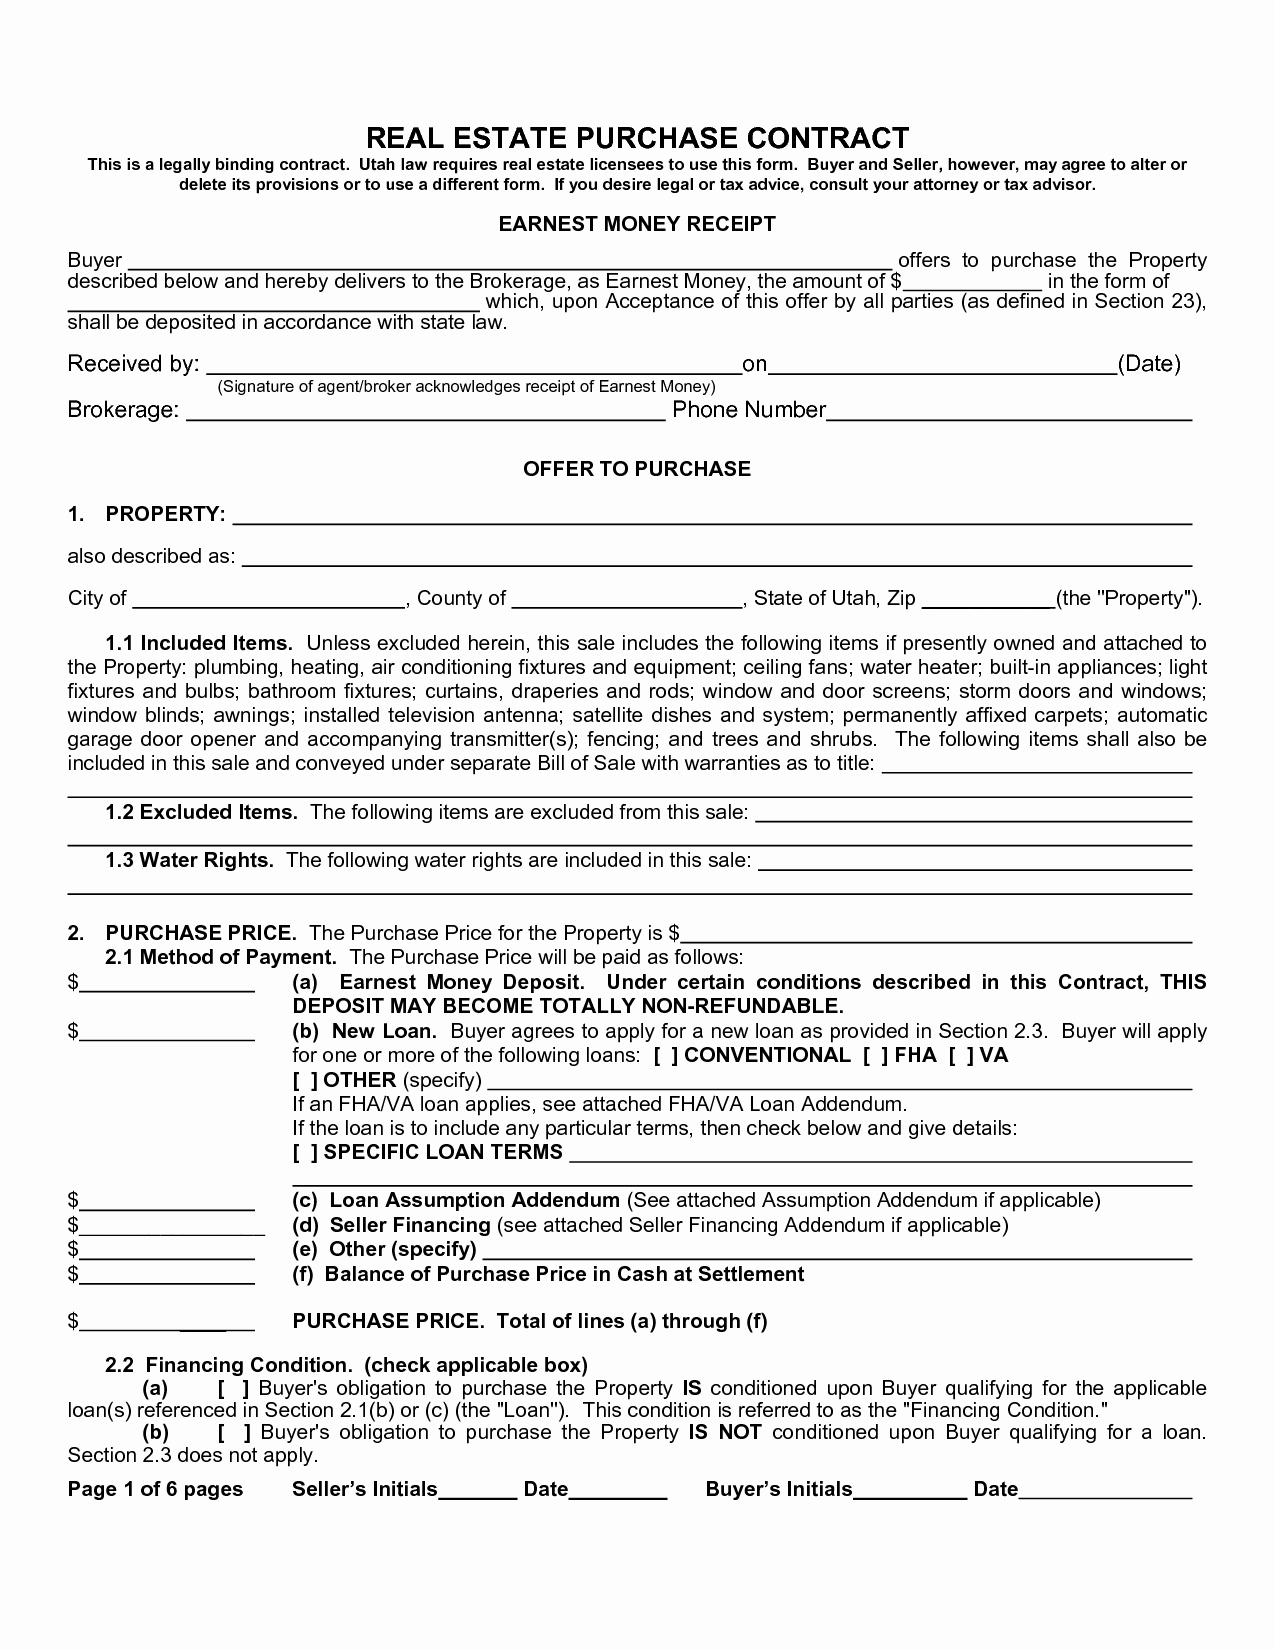 Purchase Agreement Template Free Beautiful Real Estate Purchase Agreement form Sample Image Gallery